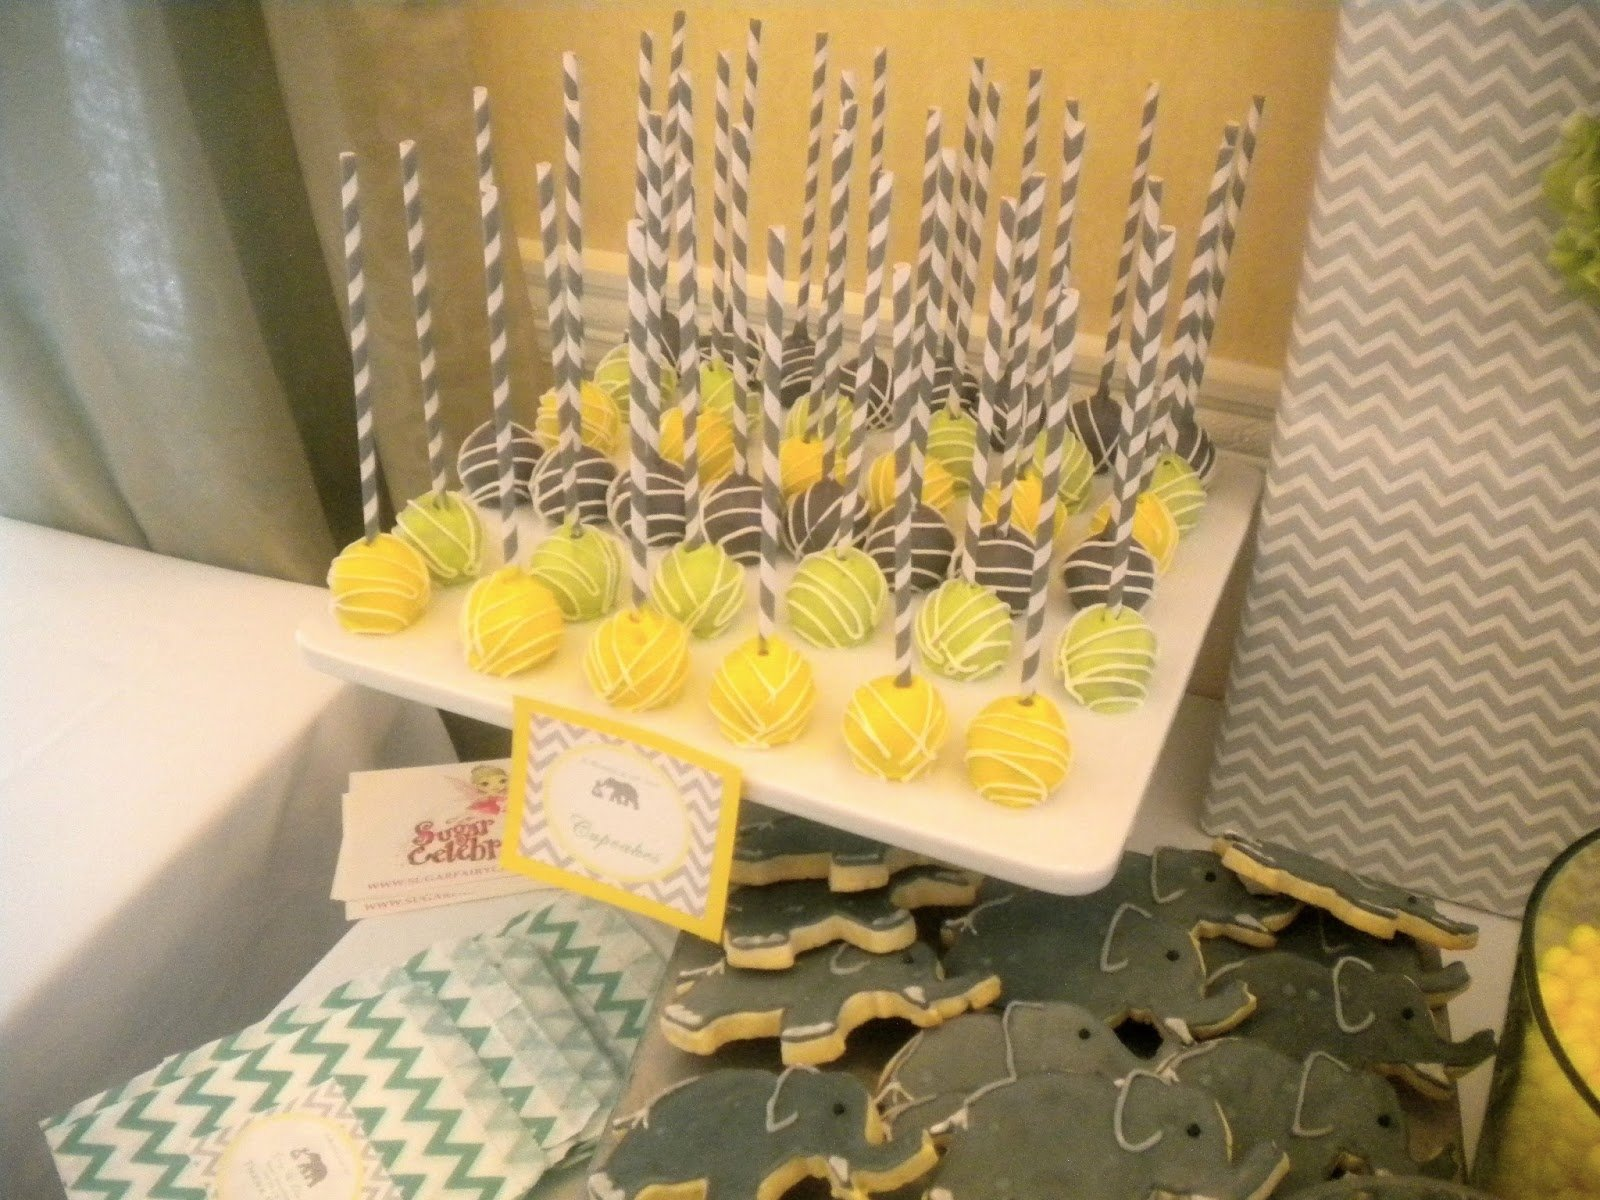 10 Trendy Yellow And Gray Baby Shower Ideas enchanted expectations bundle of joy mint green yellow and grey 2020